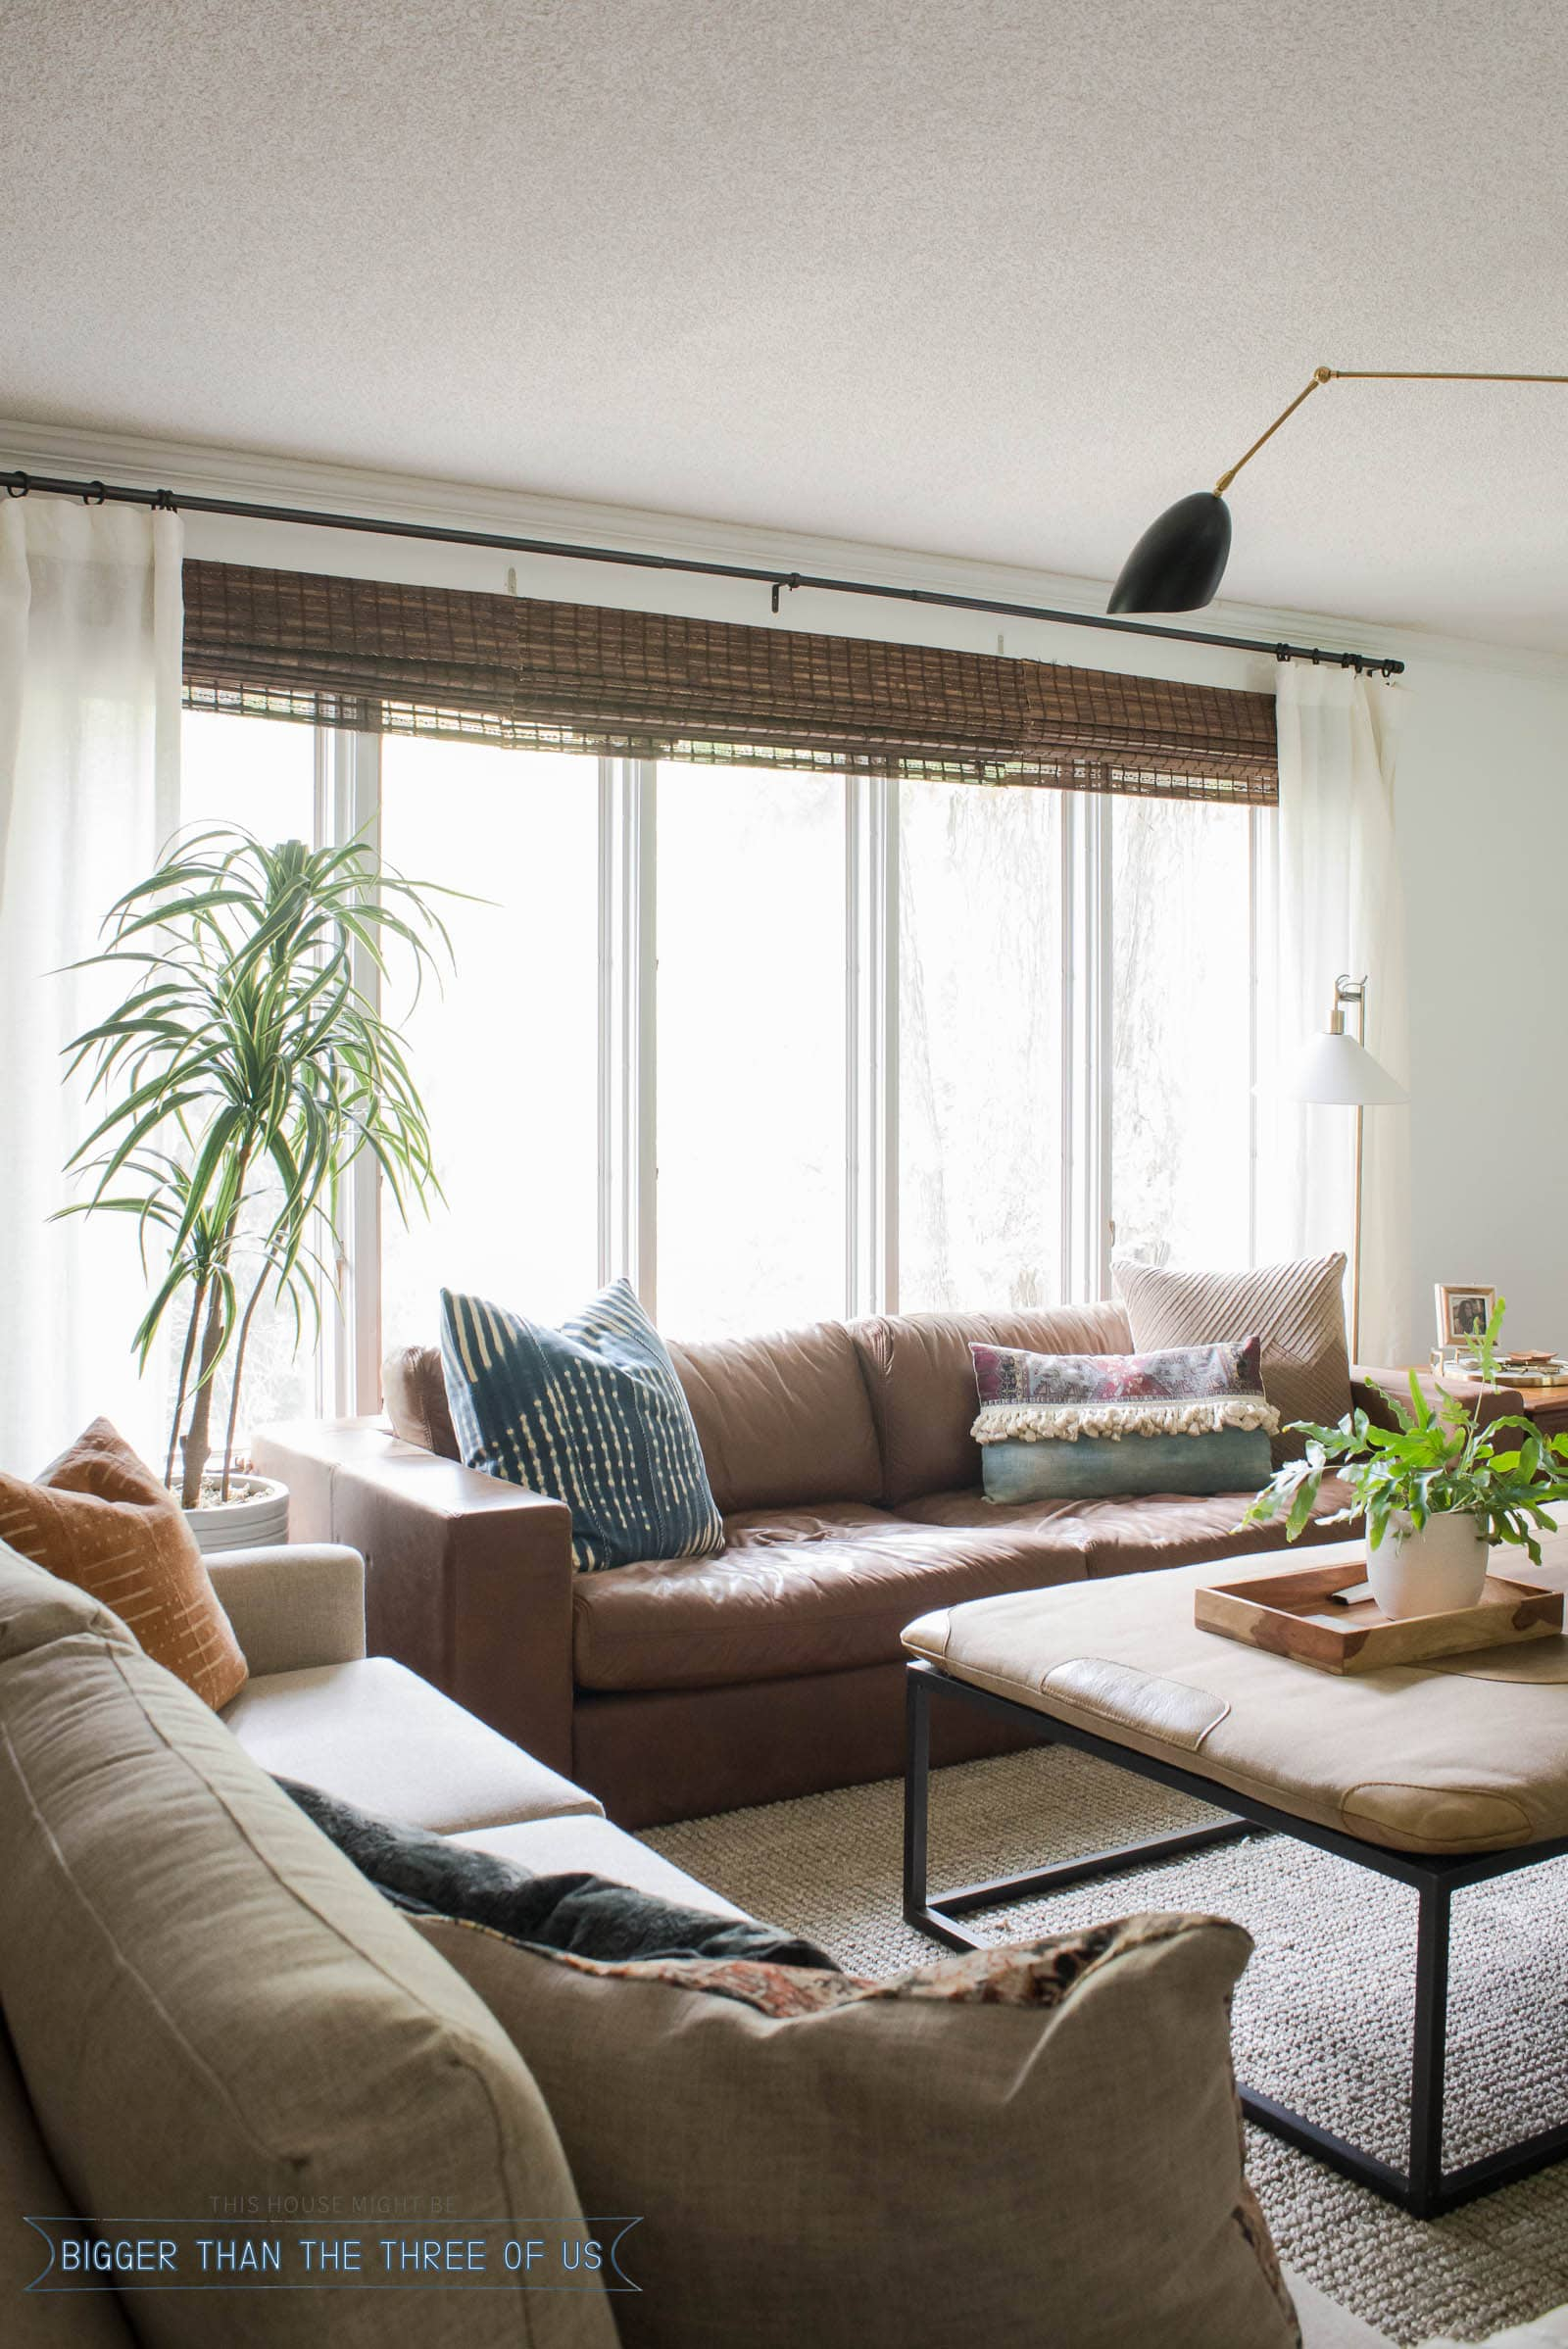 Leather Couch in front of windows in midcentury inspired living room